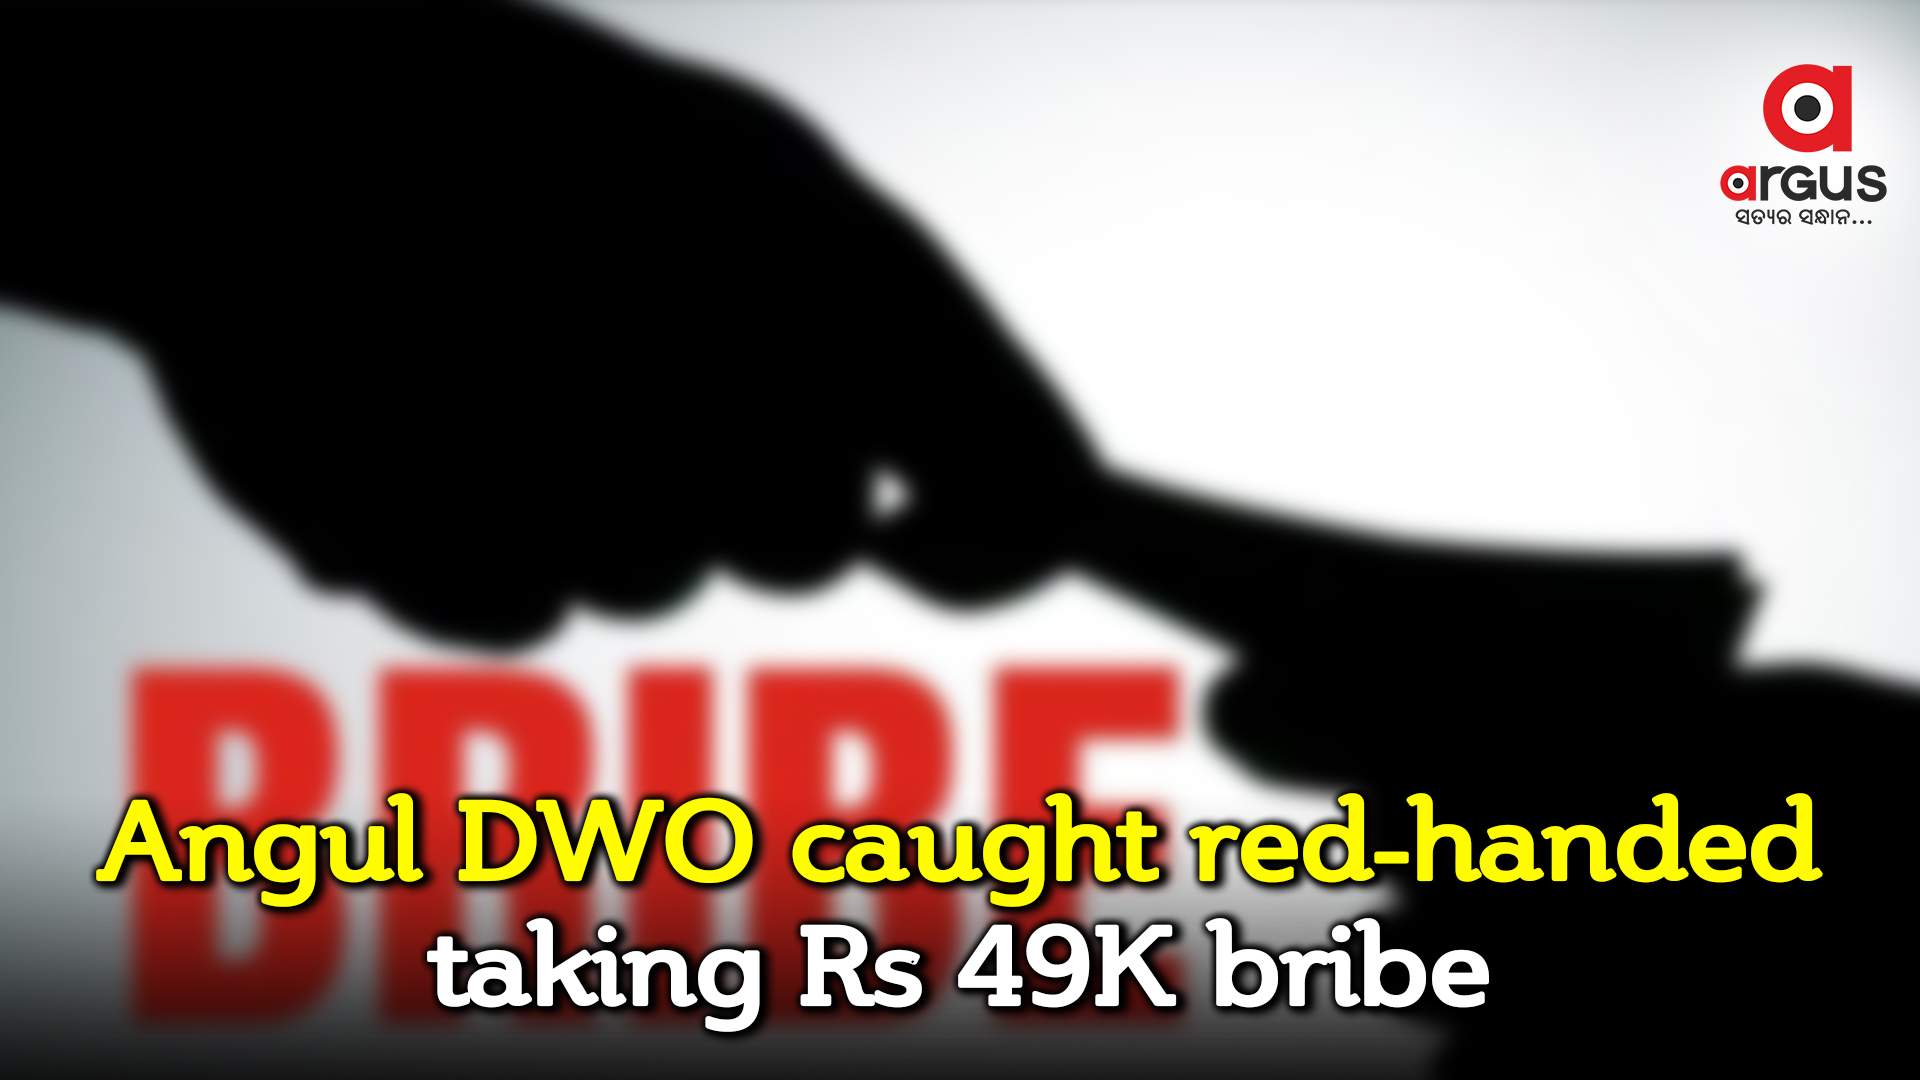 Angul DWO caught red-handed taking Rs 49K bribe